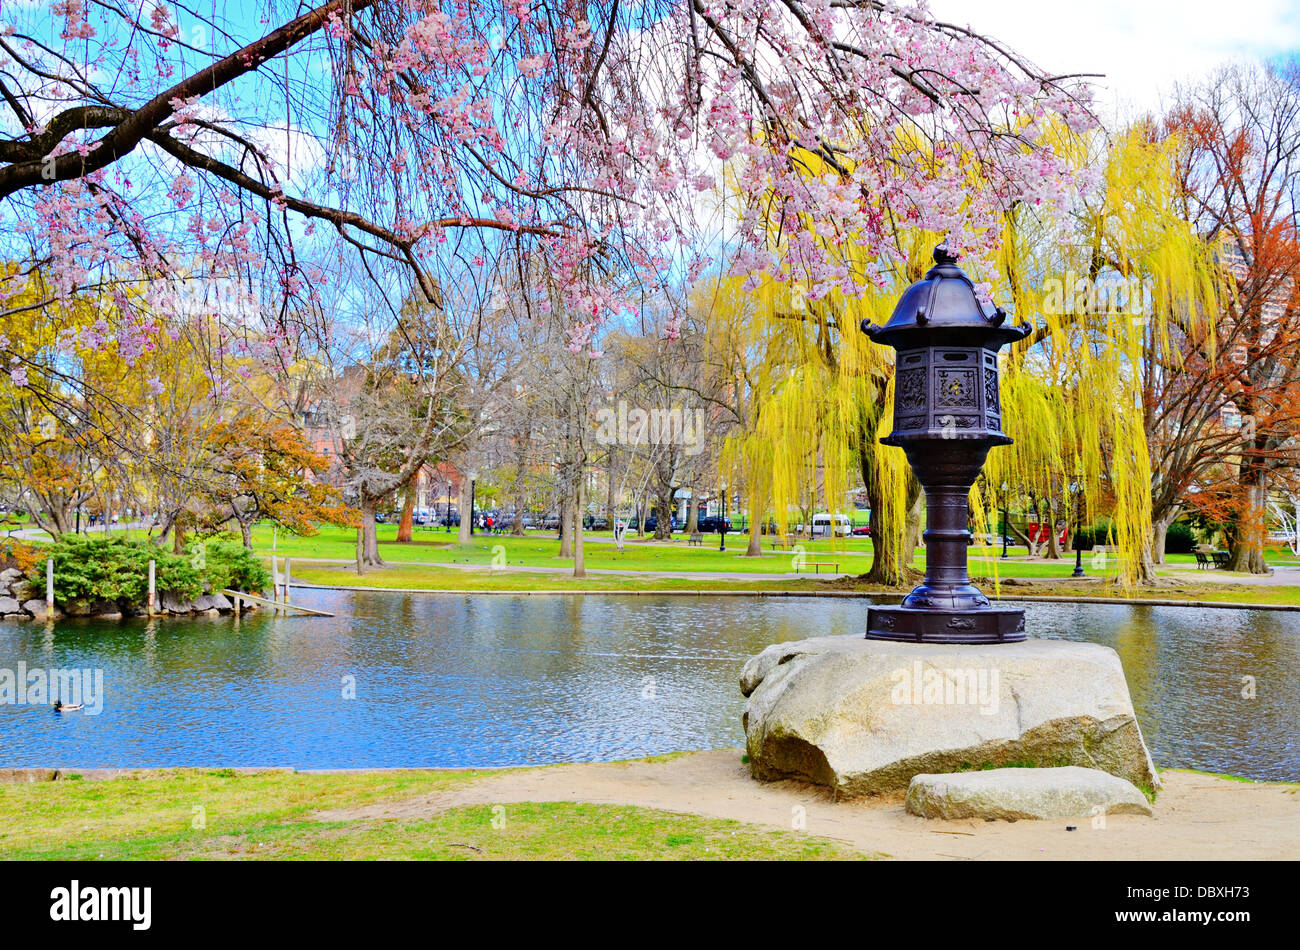 Lagoon at Boston Public Garden in Boston, Massachusetts, USA. Stock Photo